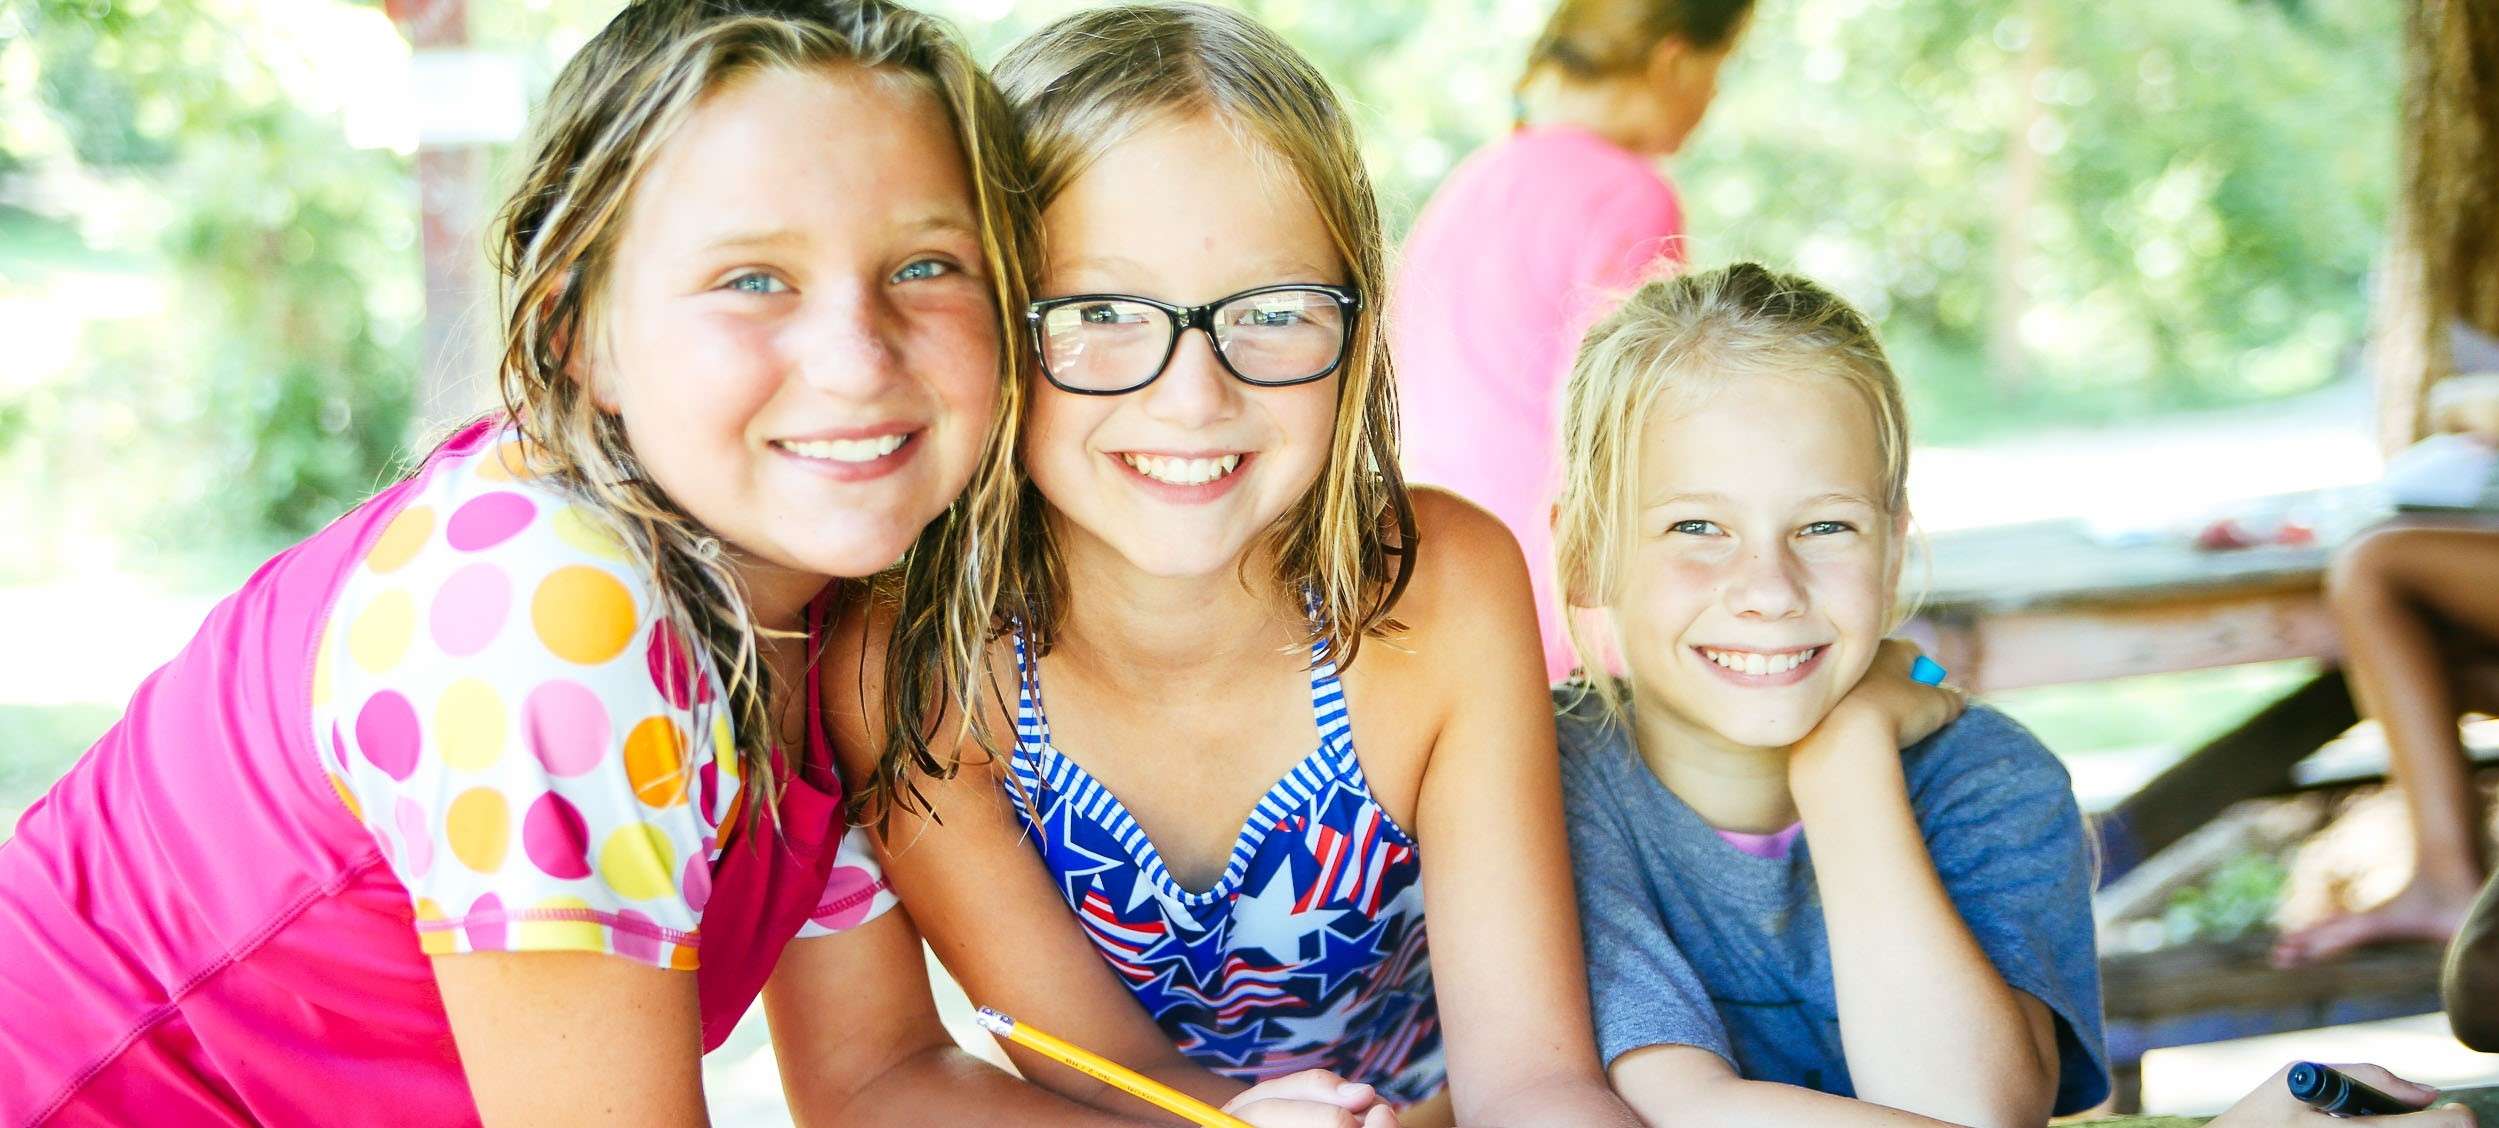 Copy of DID YOU KNOW?? Heartland has summer camps, too!